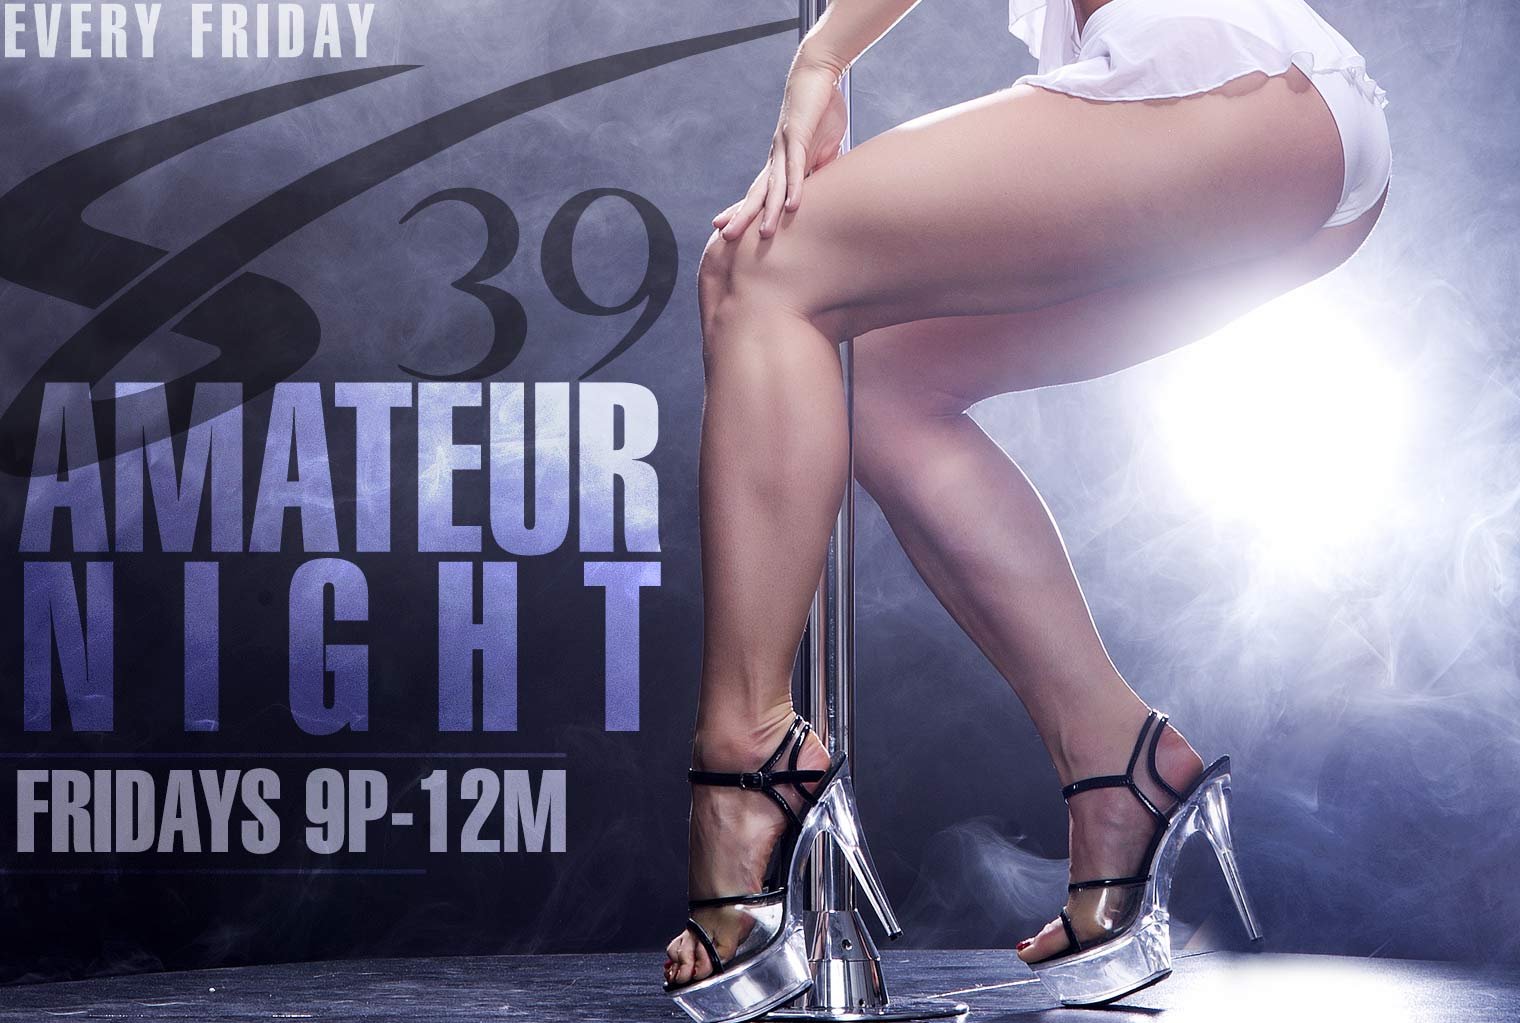 Amateur Night at Sapphire 60 Every Friday